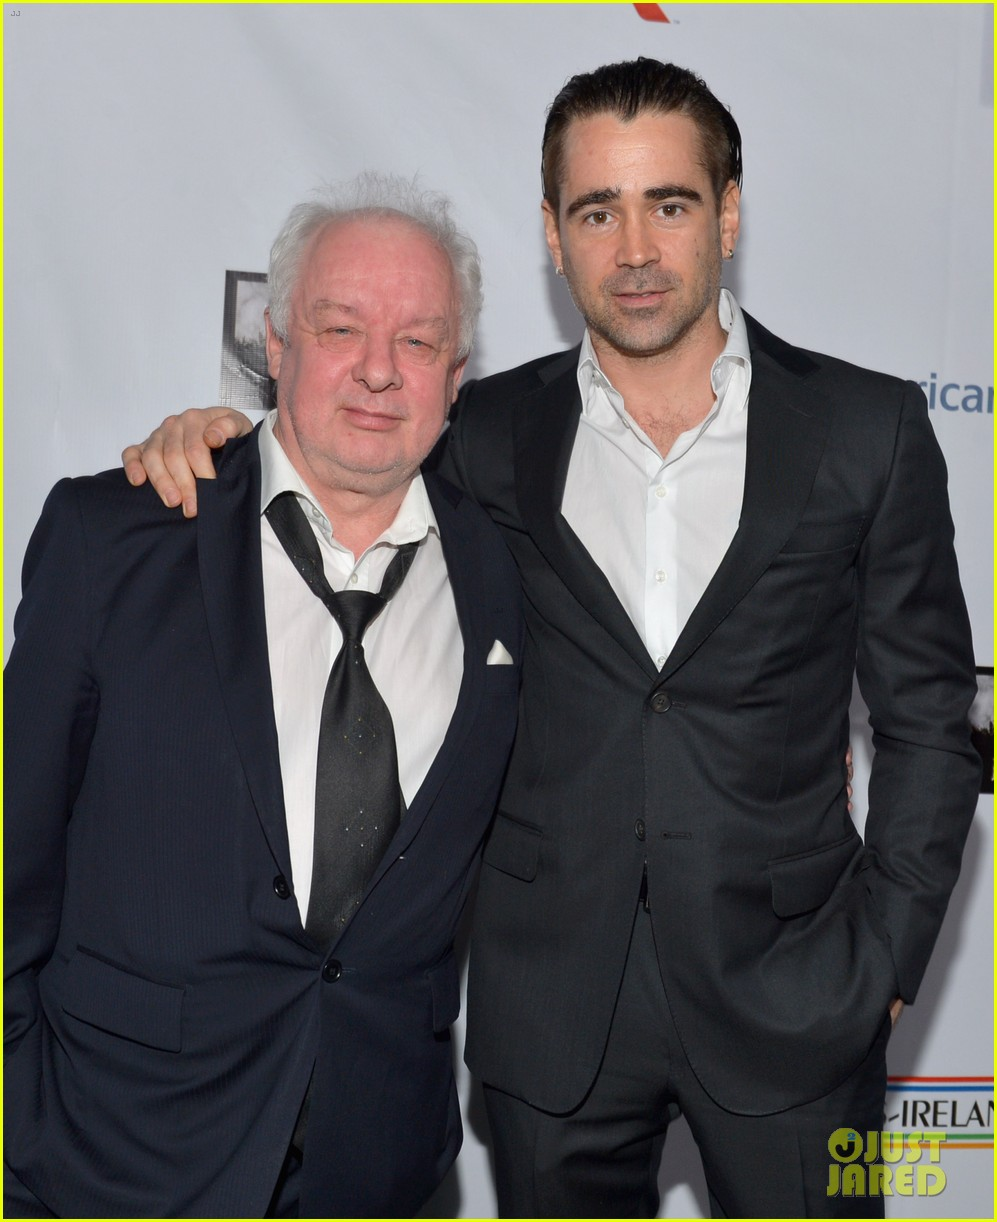 colin farrell pre oscars oscar wilde irish honoree 022817053